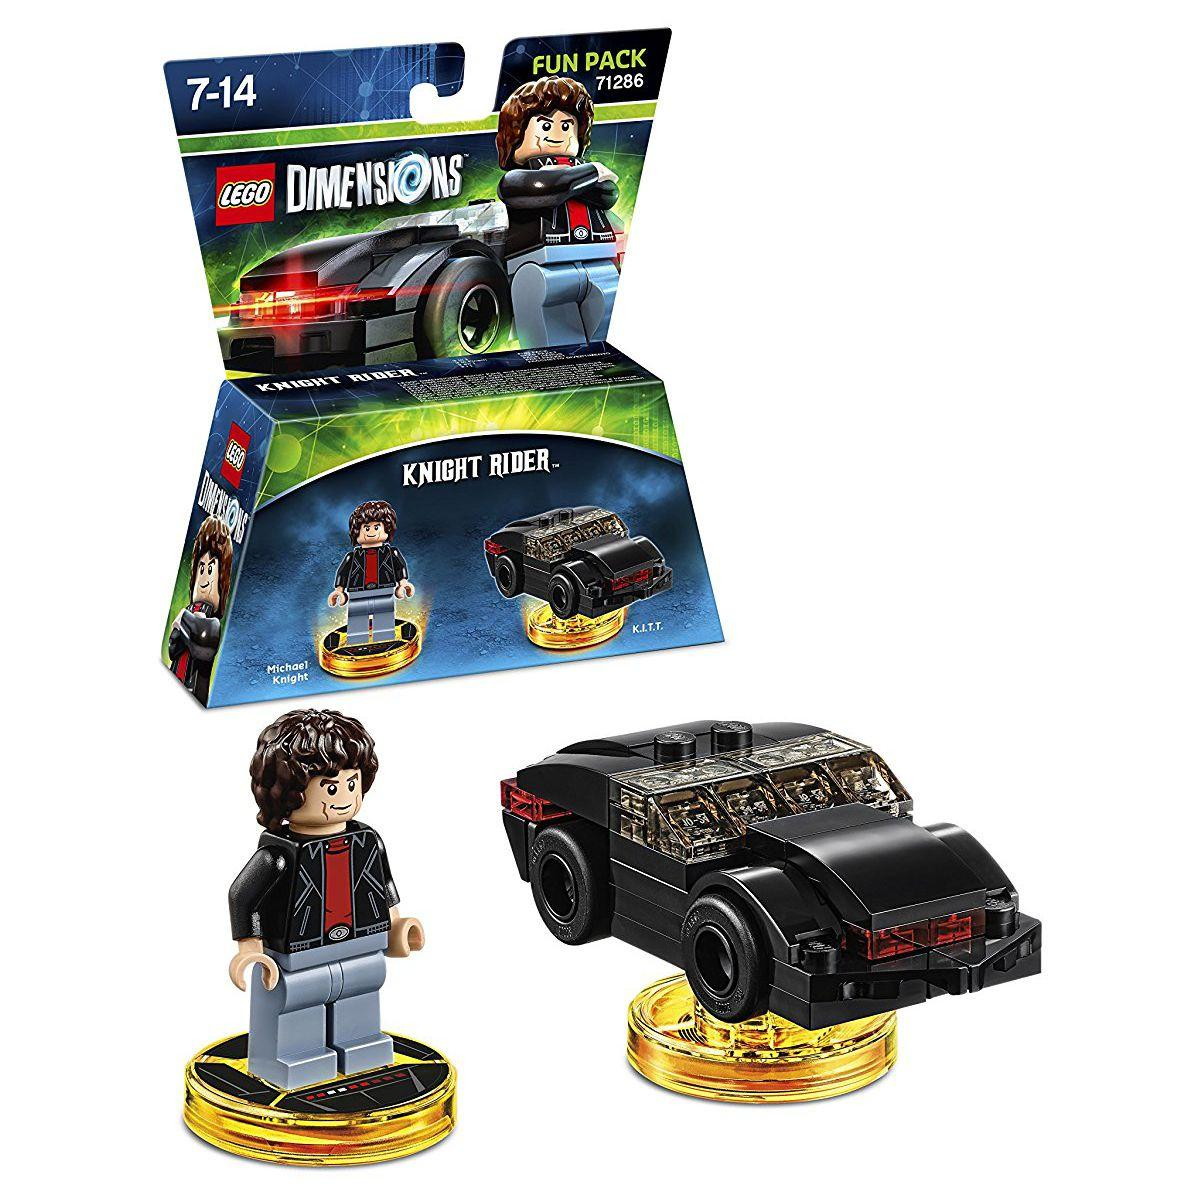 Pack figurines lego dimensions warner pack hero night rider - 20% de remise imm�diate avec le code : priv20 (photo)